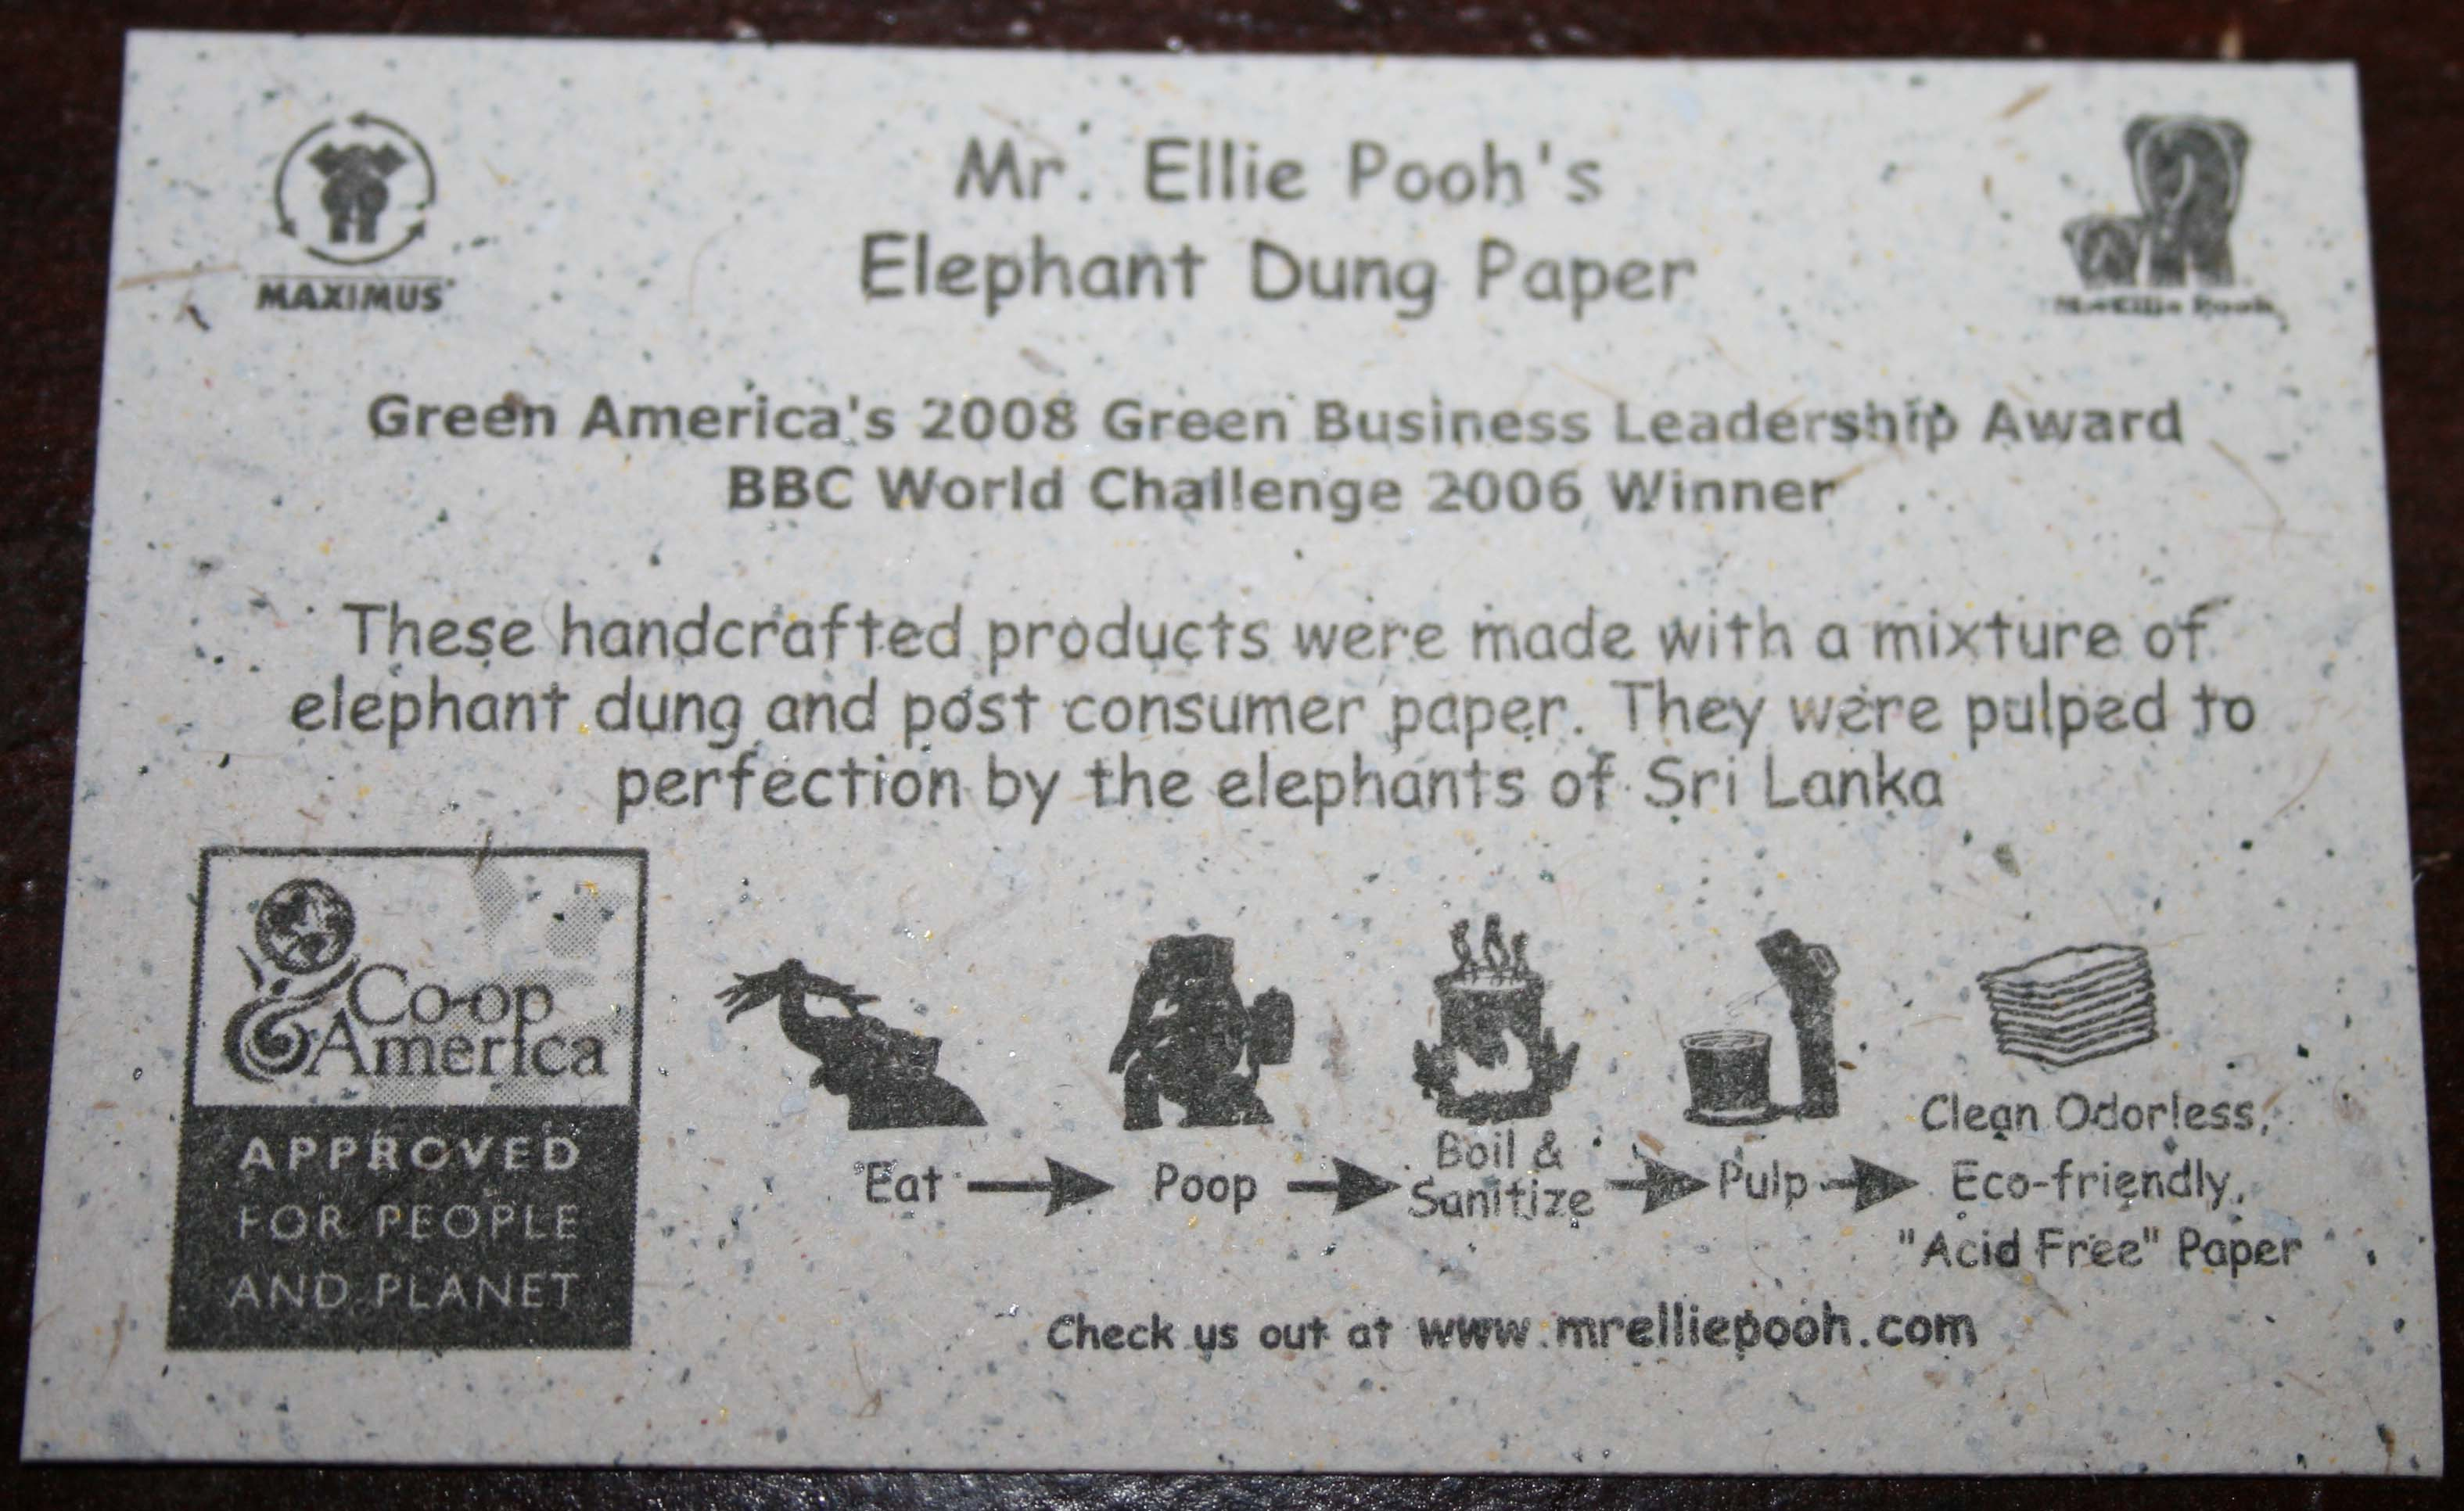 elephant poop paper Talking toilet paper spindle - funny bathroom gag gifts - makes your toilet paper talk - record up to 10 secs of audio - fun white elephant gifts - hilarious prank - recordable toilet roll talker.